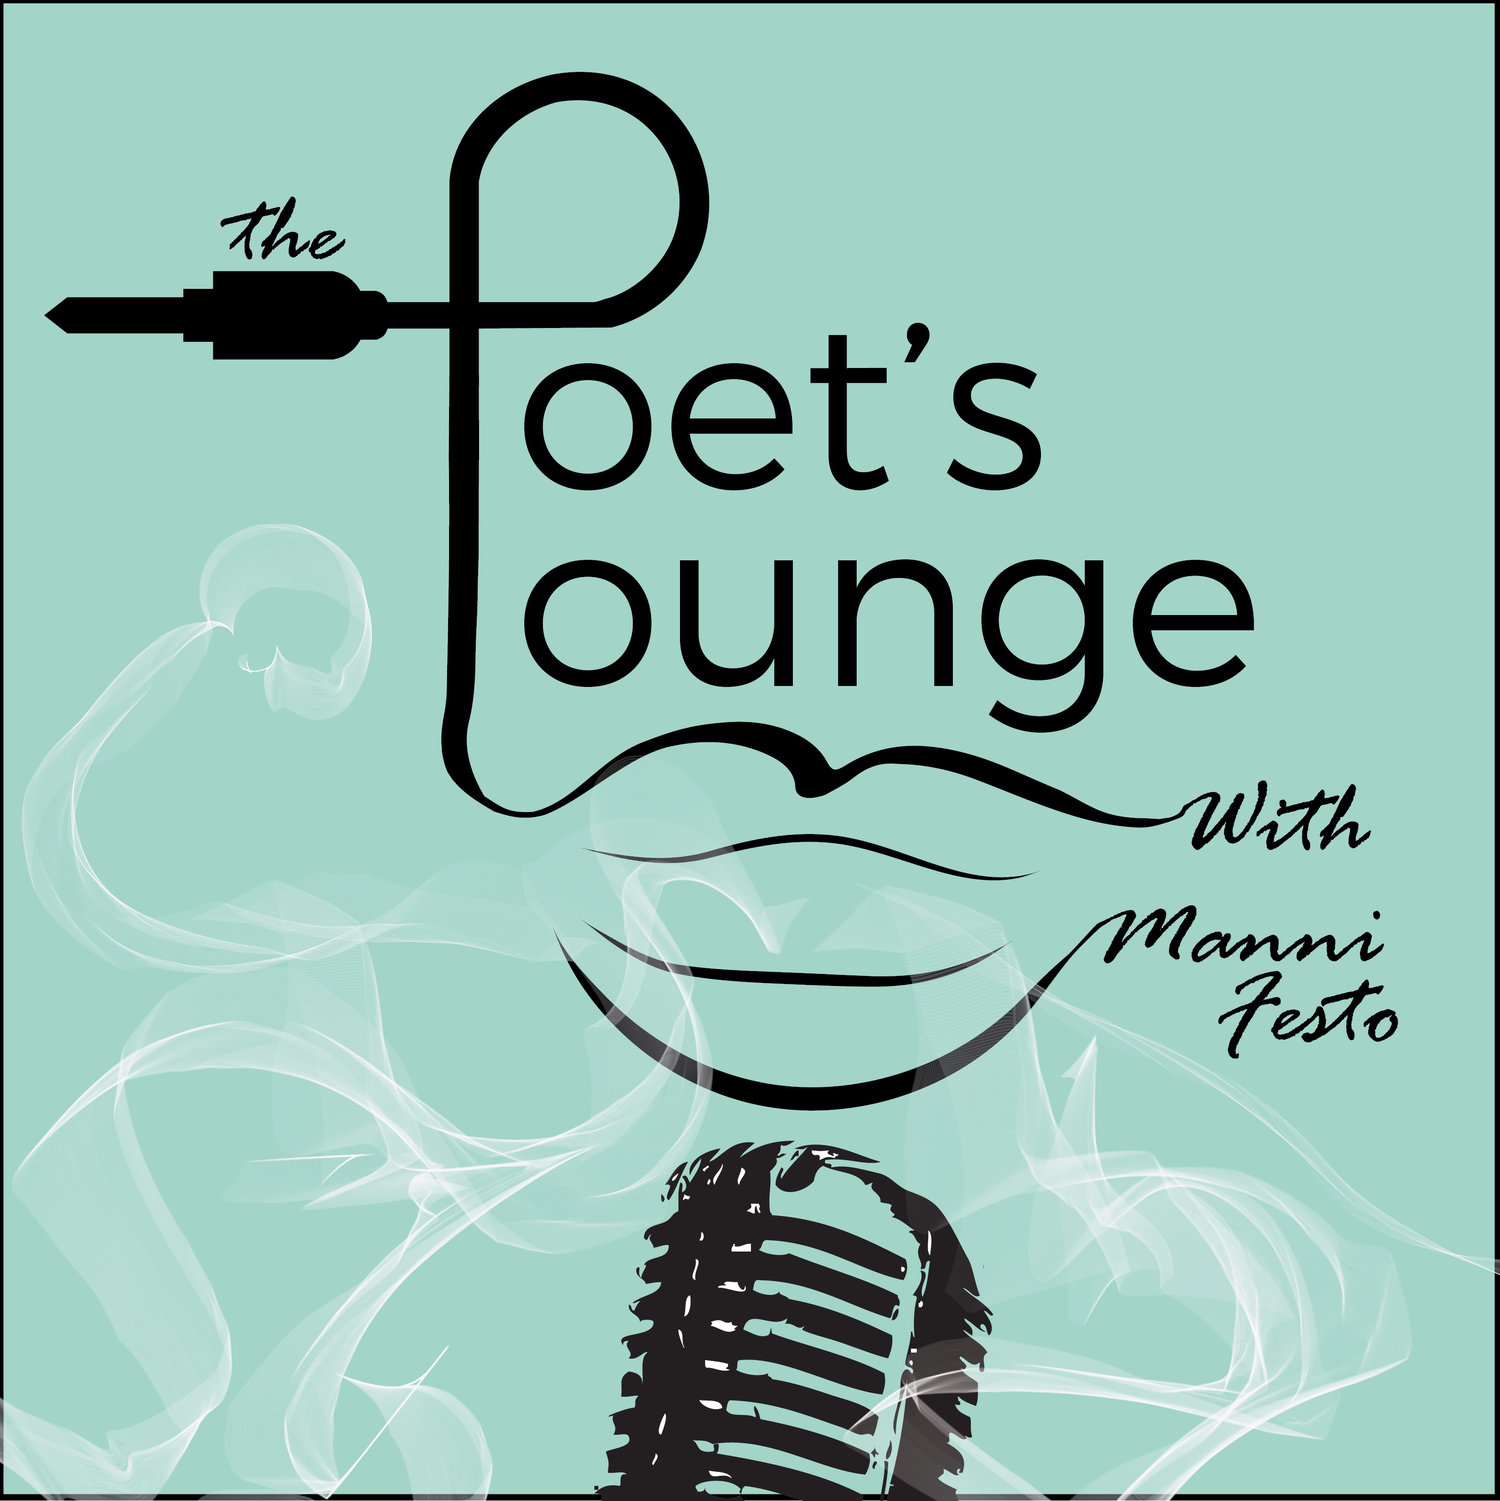 The Poet's Lounge